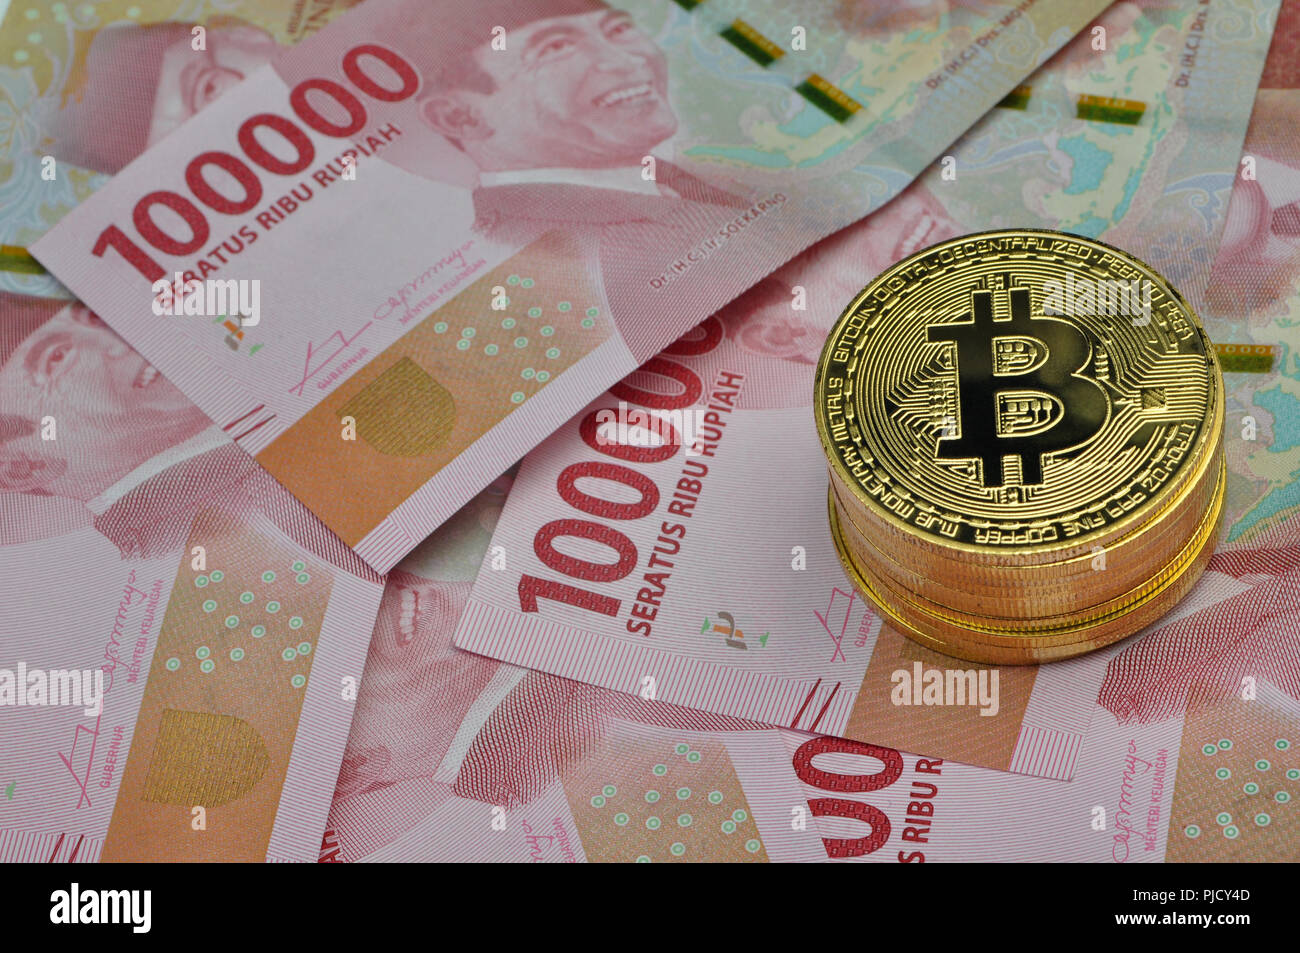 Initial Coin Offering Stock Photos Voucher Deposit Kh Rp 100000 Bitcoin And Indonesia Rupiah Image